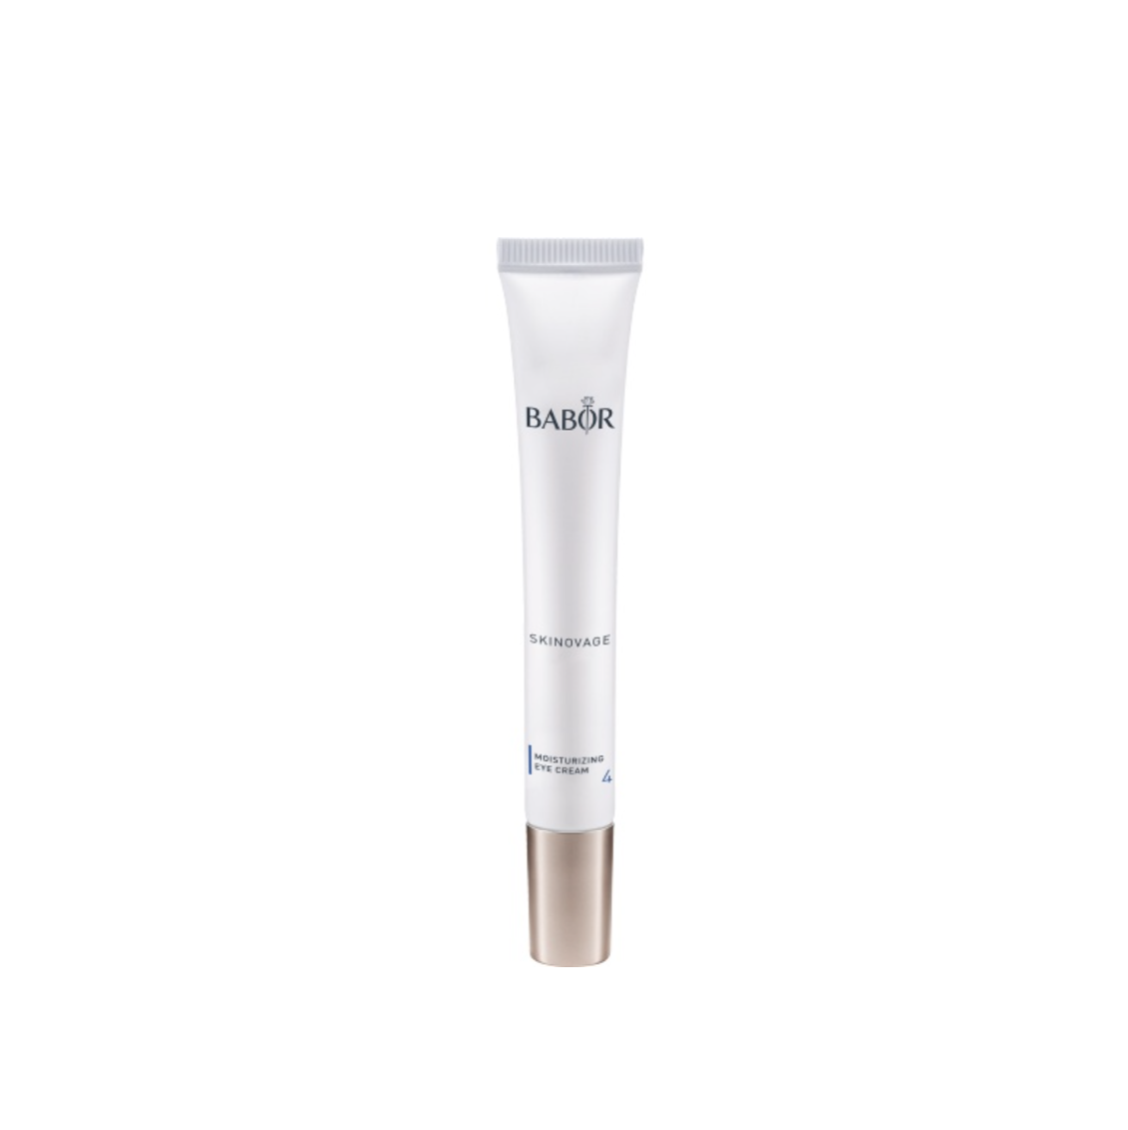 Babor Skinovage Moisturizing Eye Cream, Augencreme